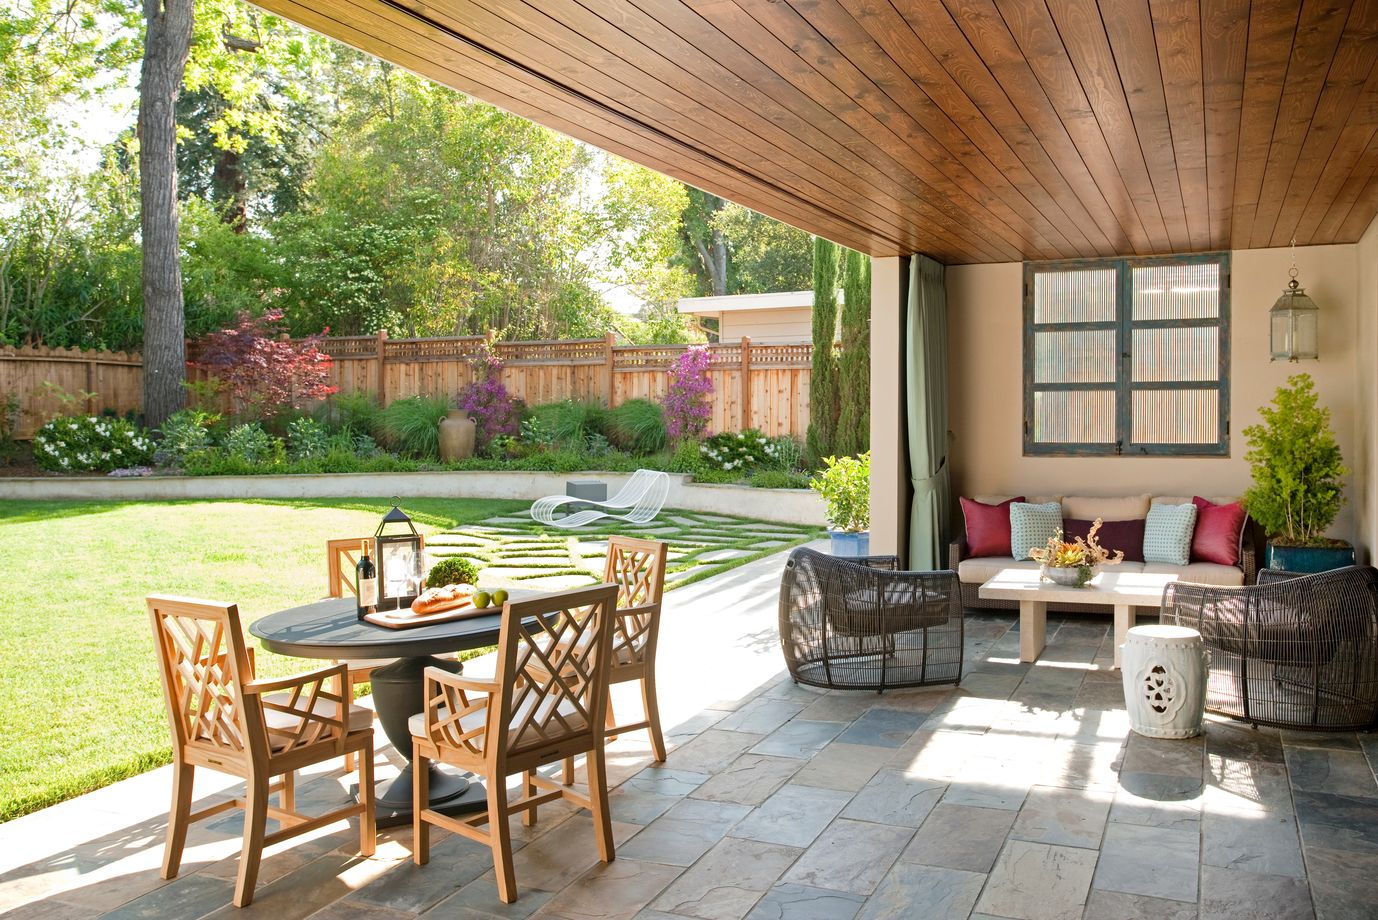 6 Design Ideas to Perk Up Your Outdoor Living Space with Color on Covered Outdoor Living Area id=65935